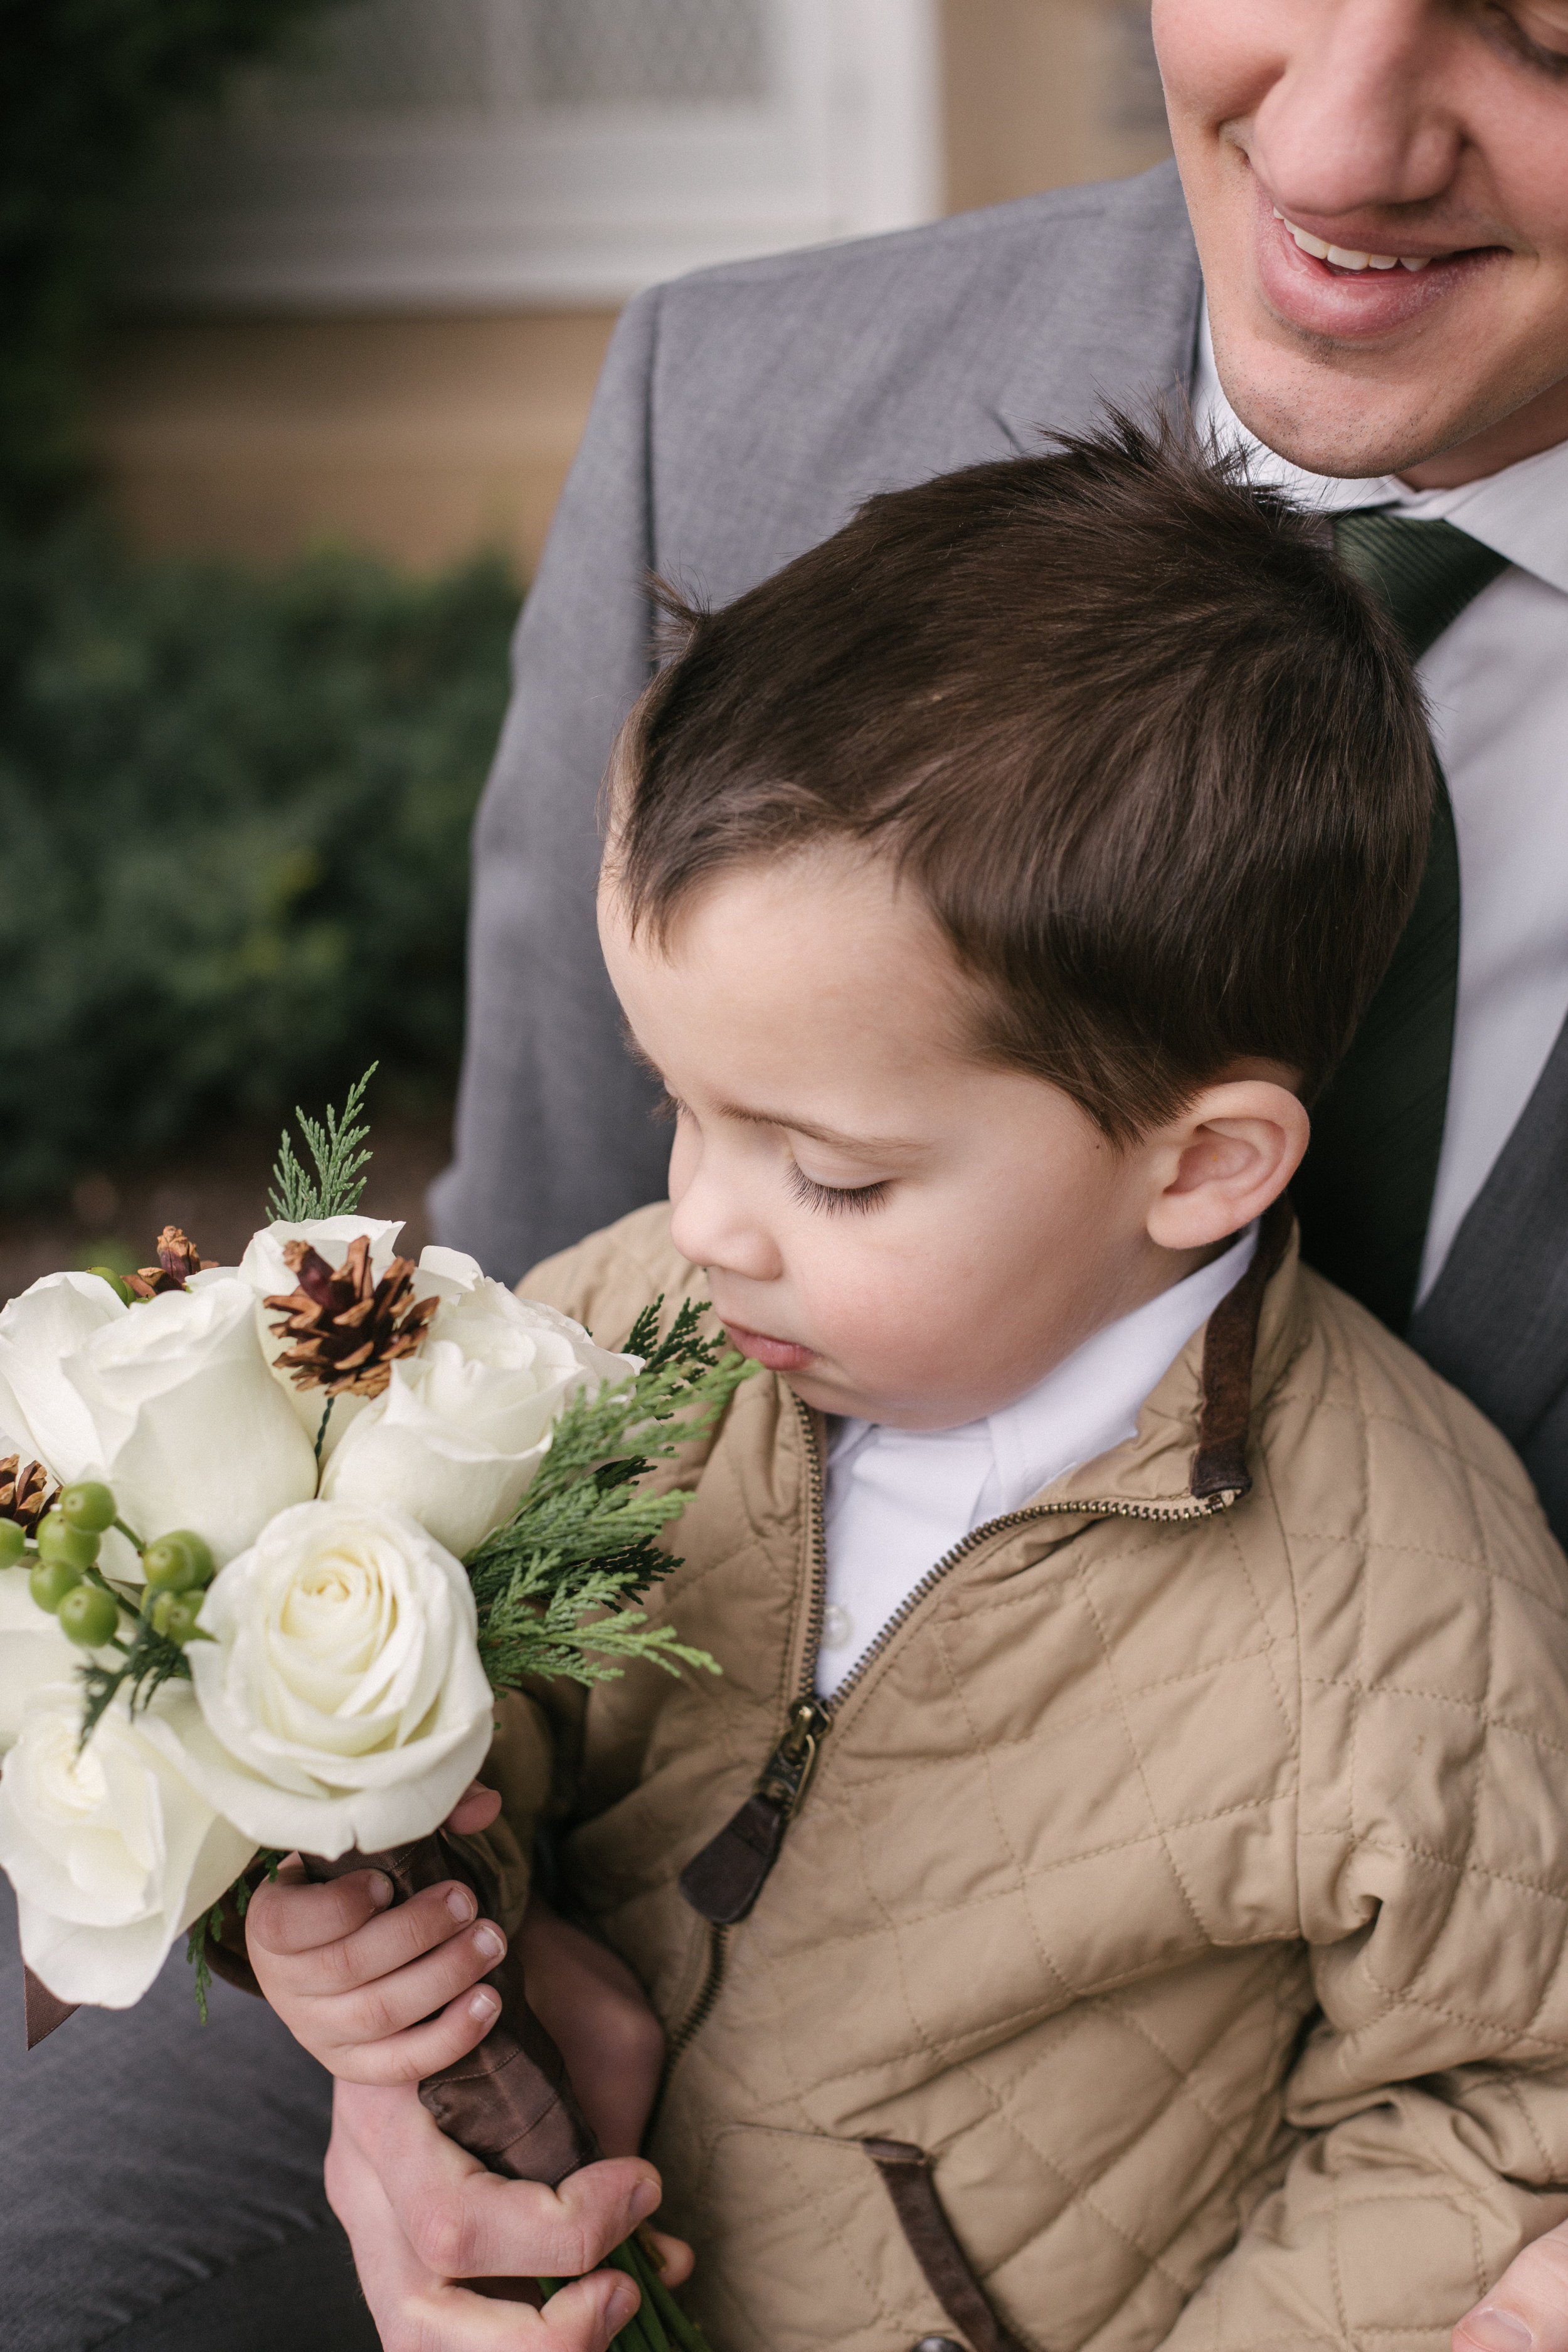 This little guy waiting outside the temple, keeping watch over the bouquet, was too cute.